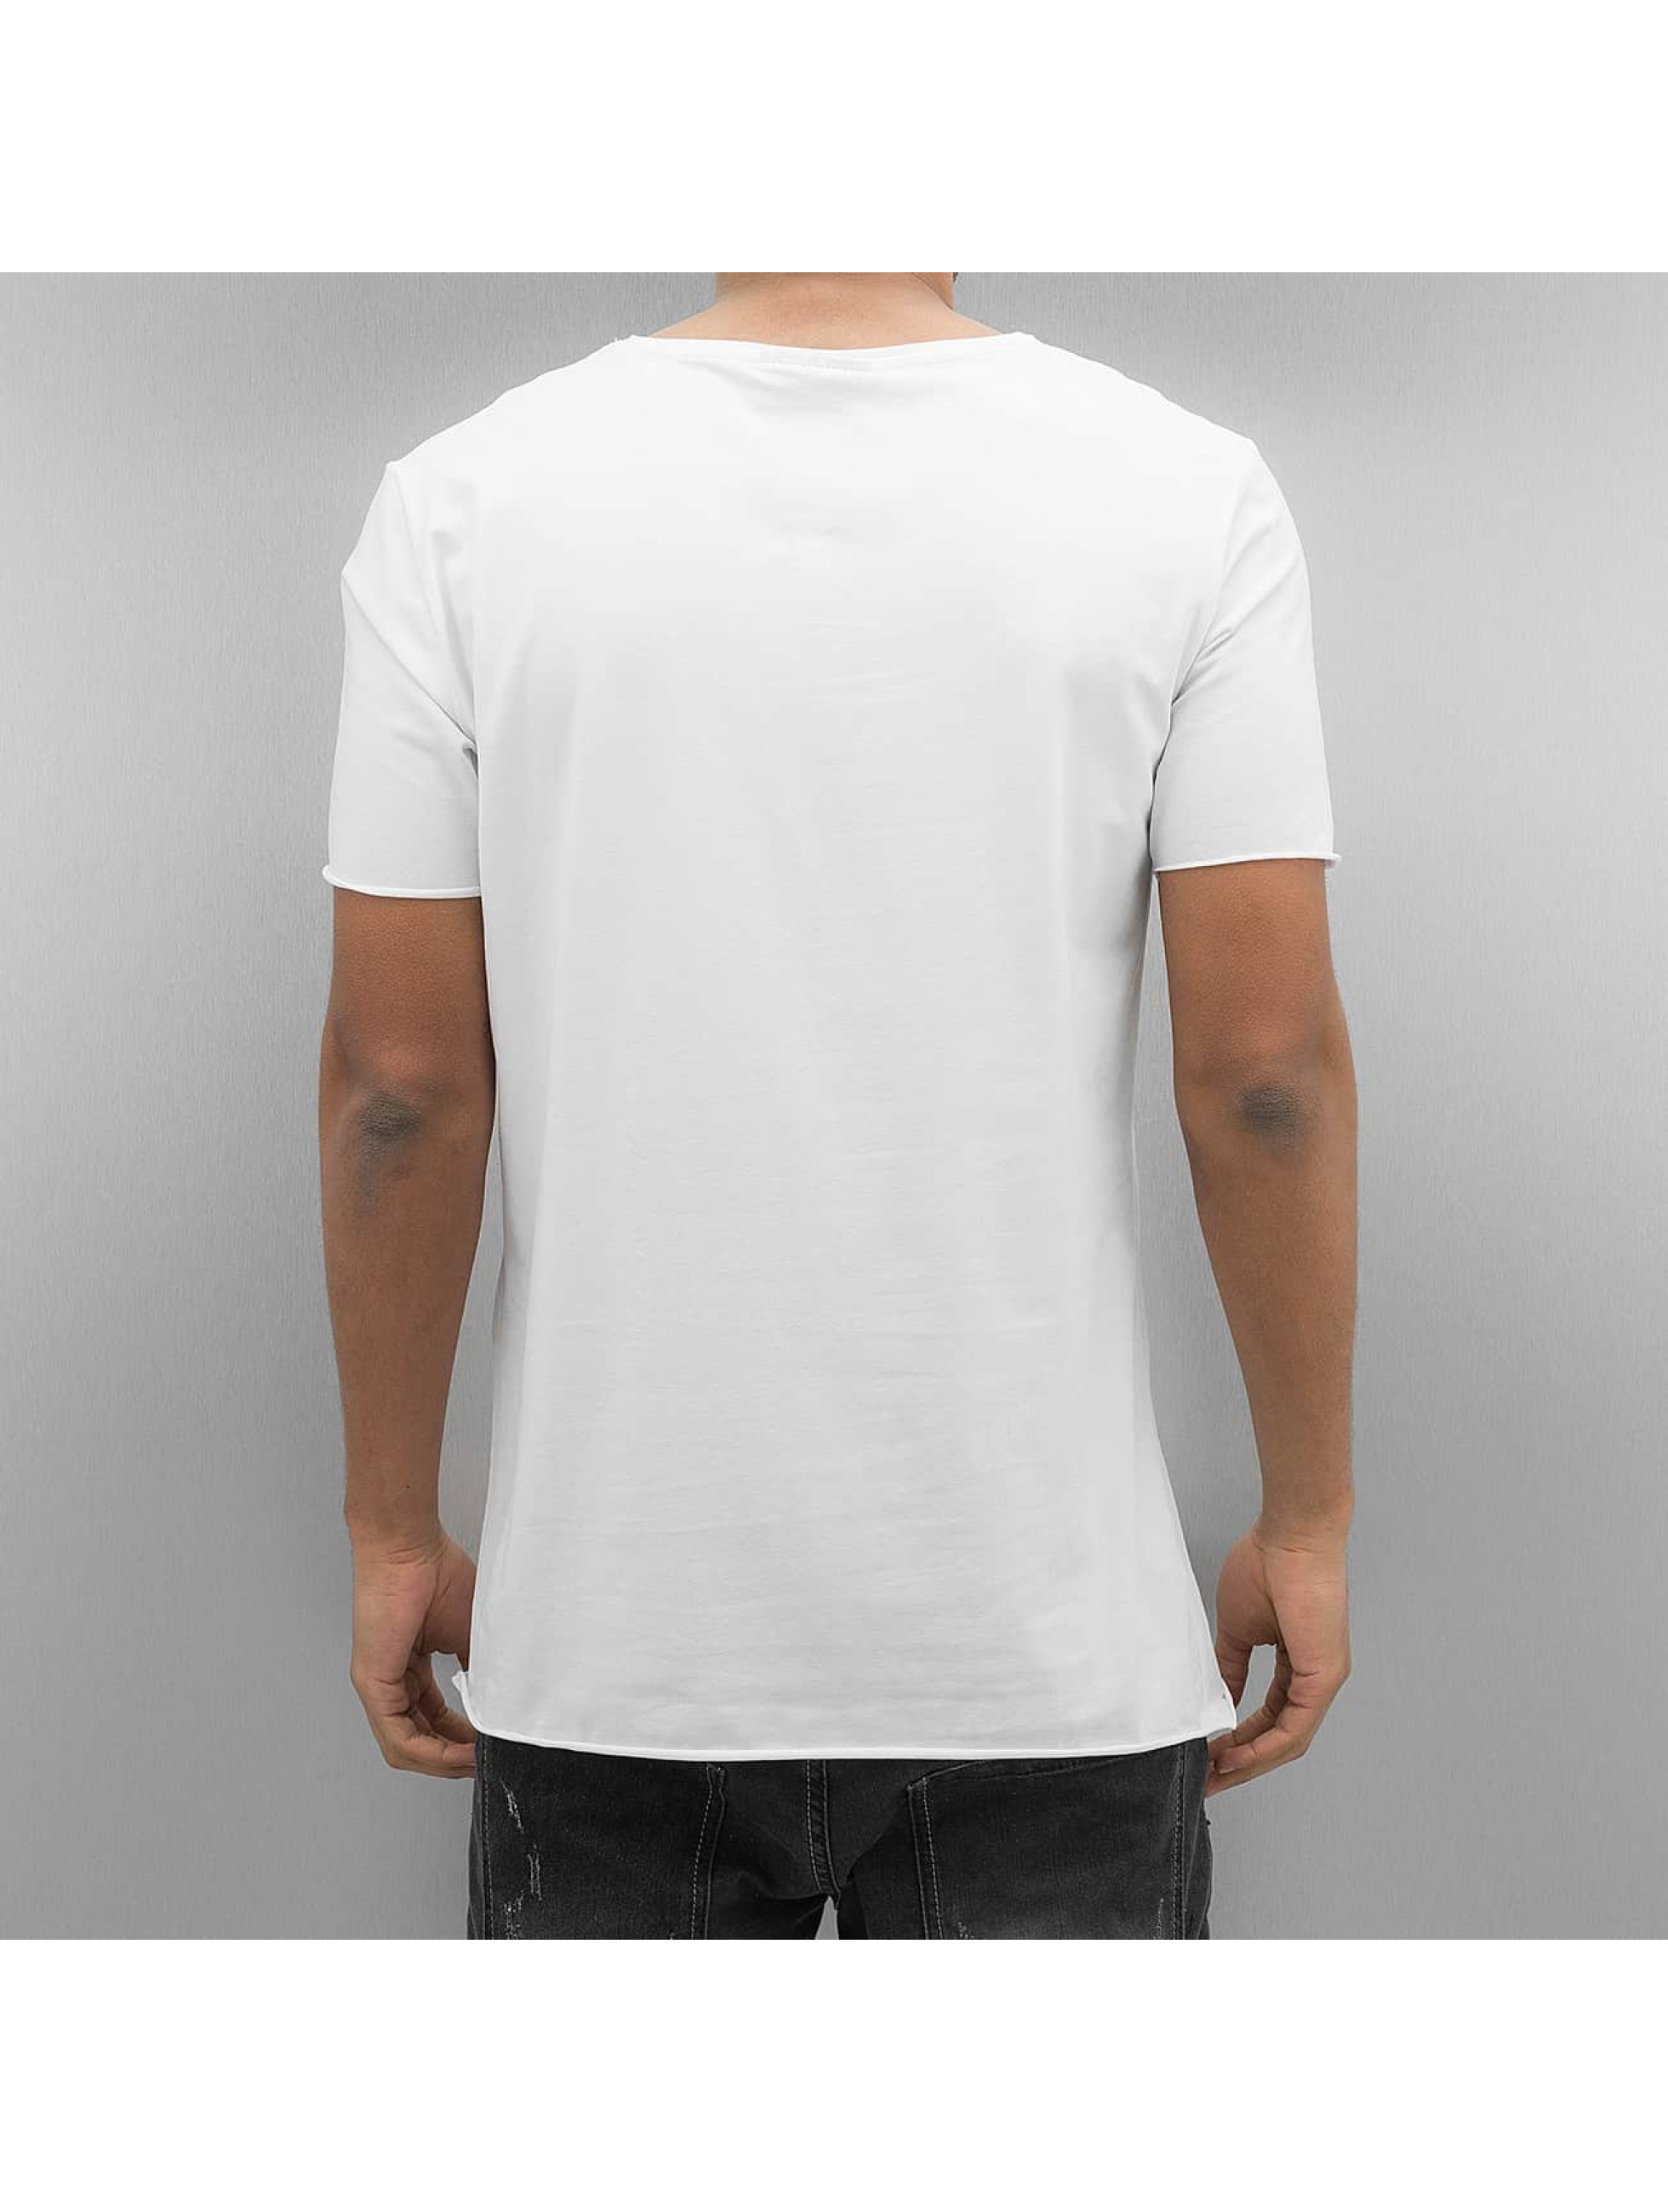 2Y T-Shirt Buy Now white